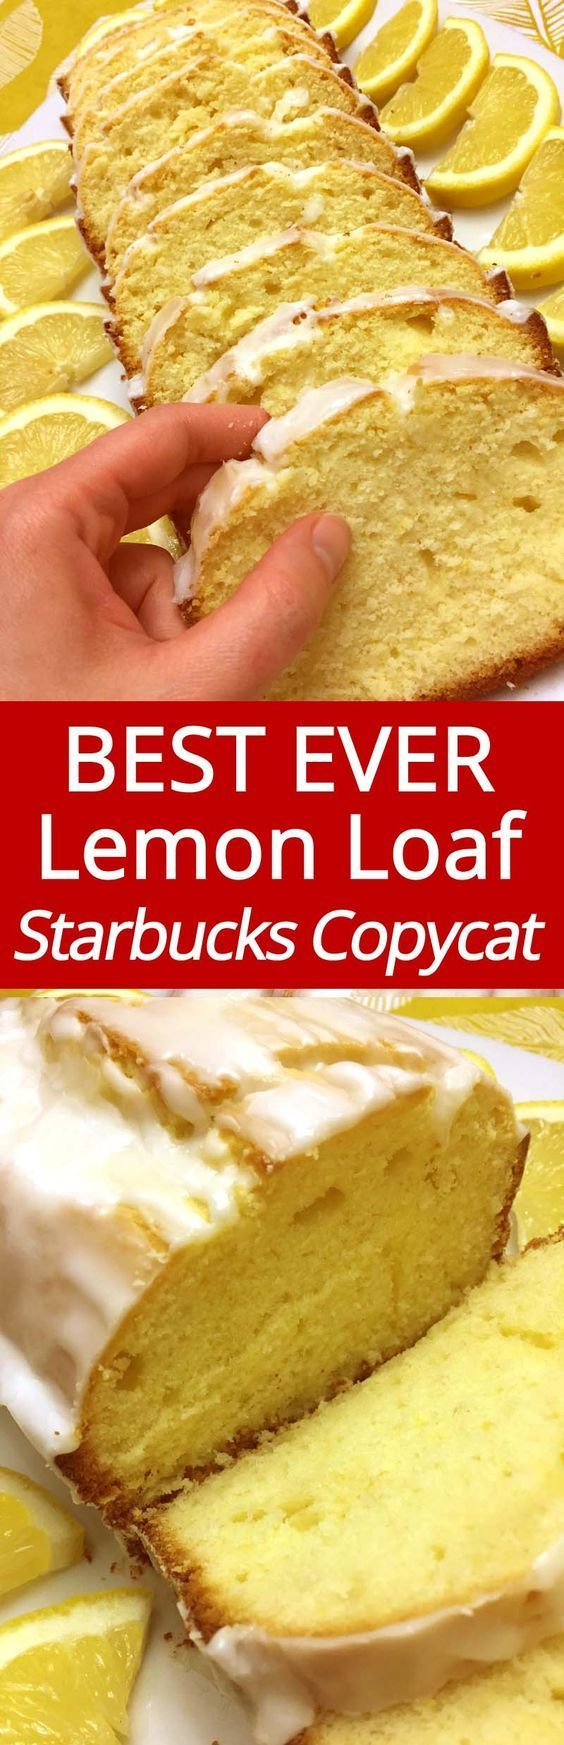 I love Starbucks lemon loaf, and this copycat version is amazing! This lemon pound cake is the best ever!